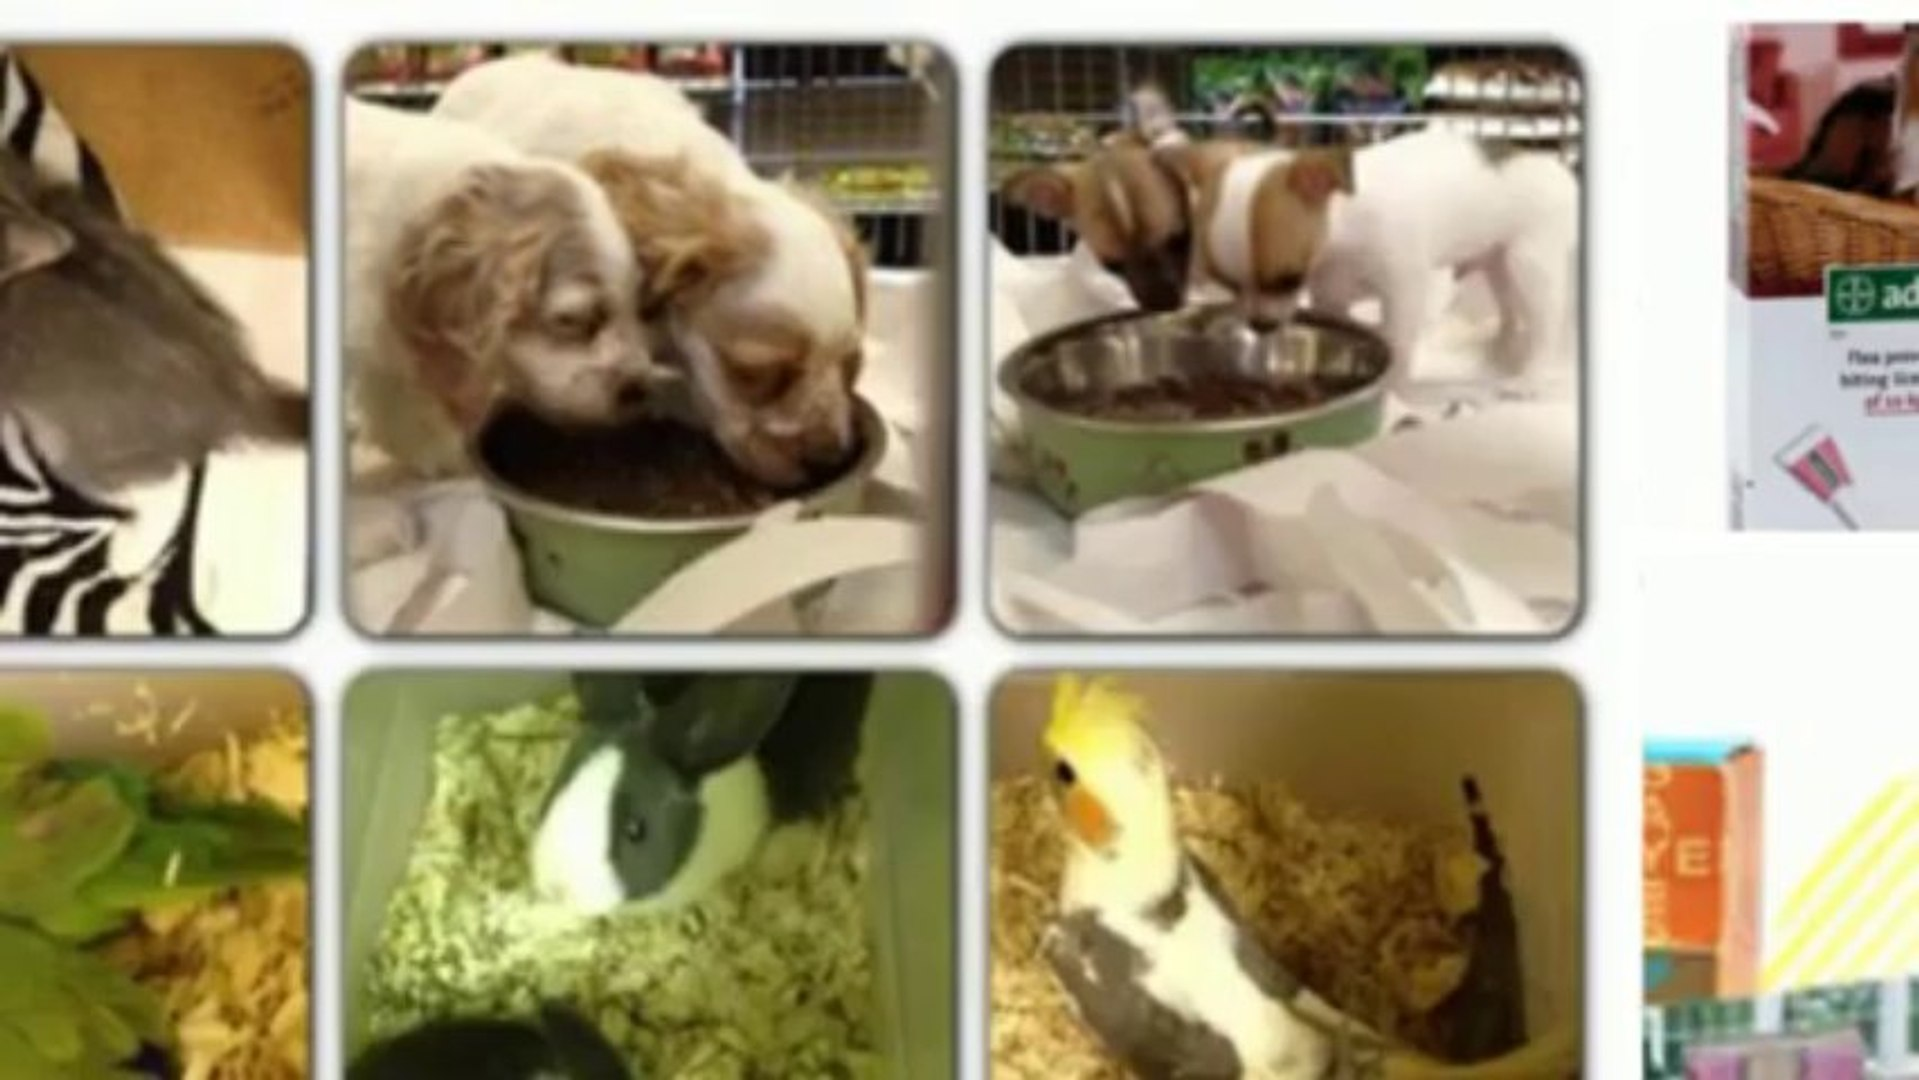 Our Pet World Singapore - Our Pet World Promo Code and Our Pet World ... - Save-with-Codes